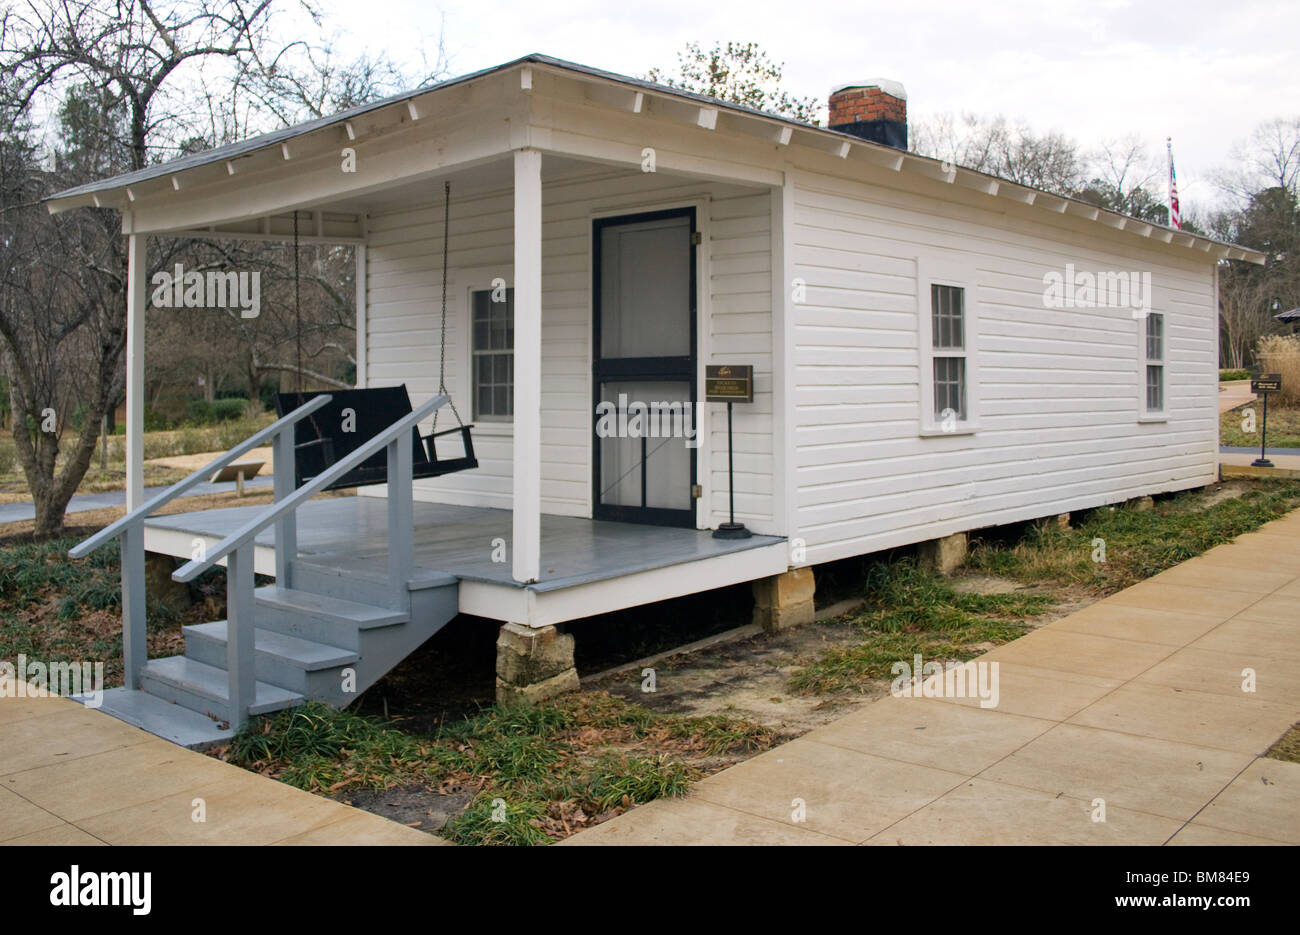 Elvis Presley Birthplace in Tupelo Mississippi - Stock Image